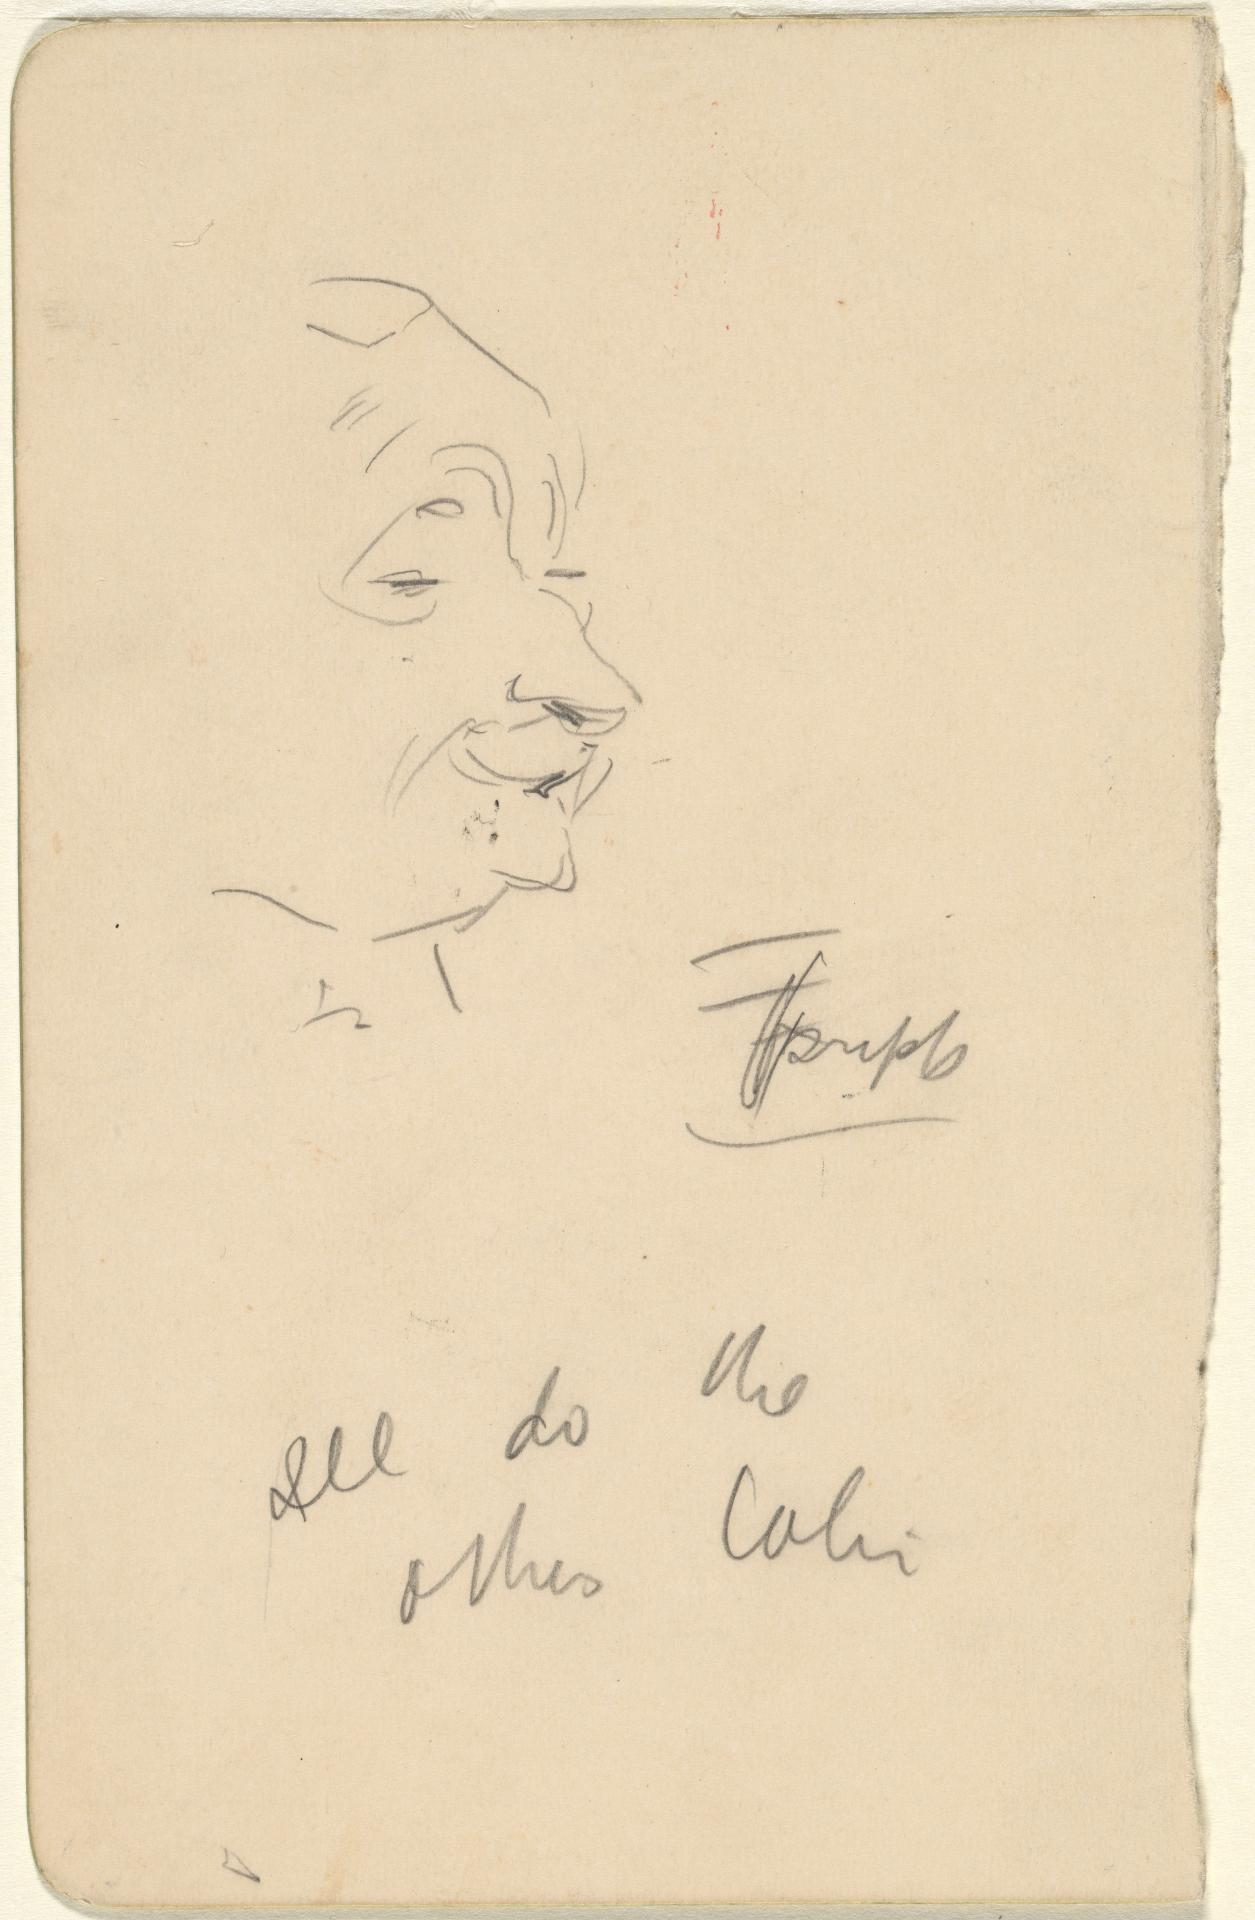 (Sketch of man's face II)